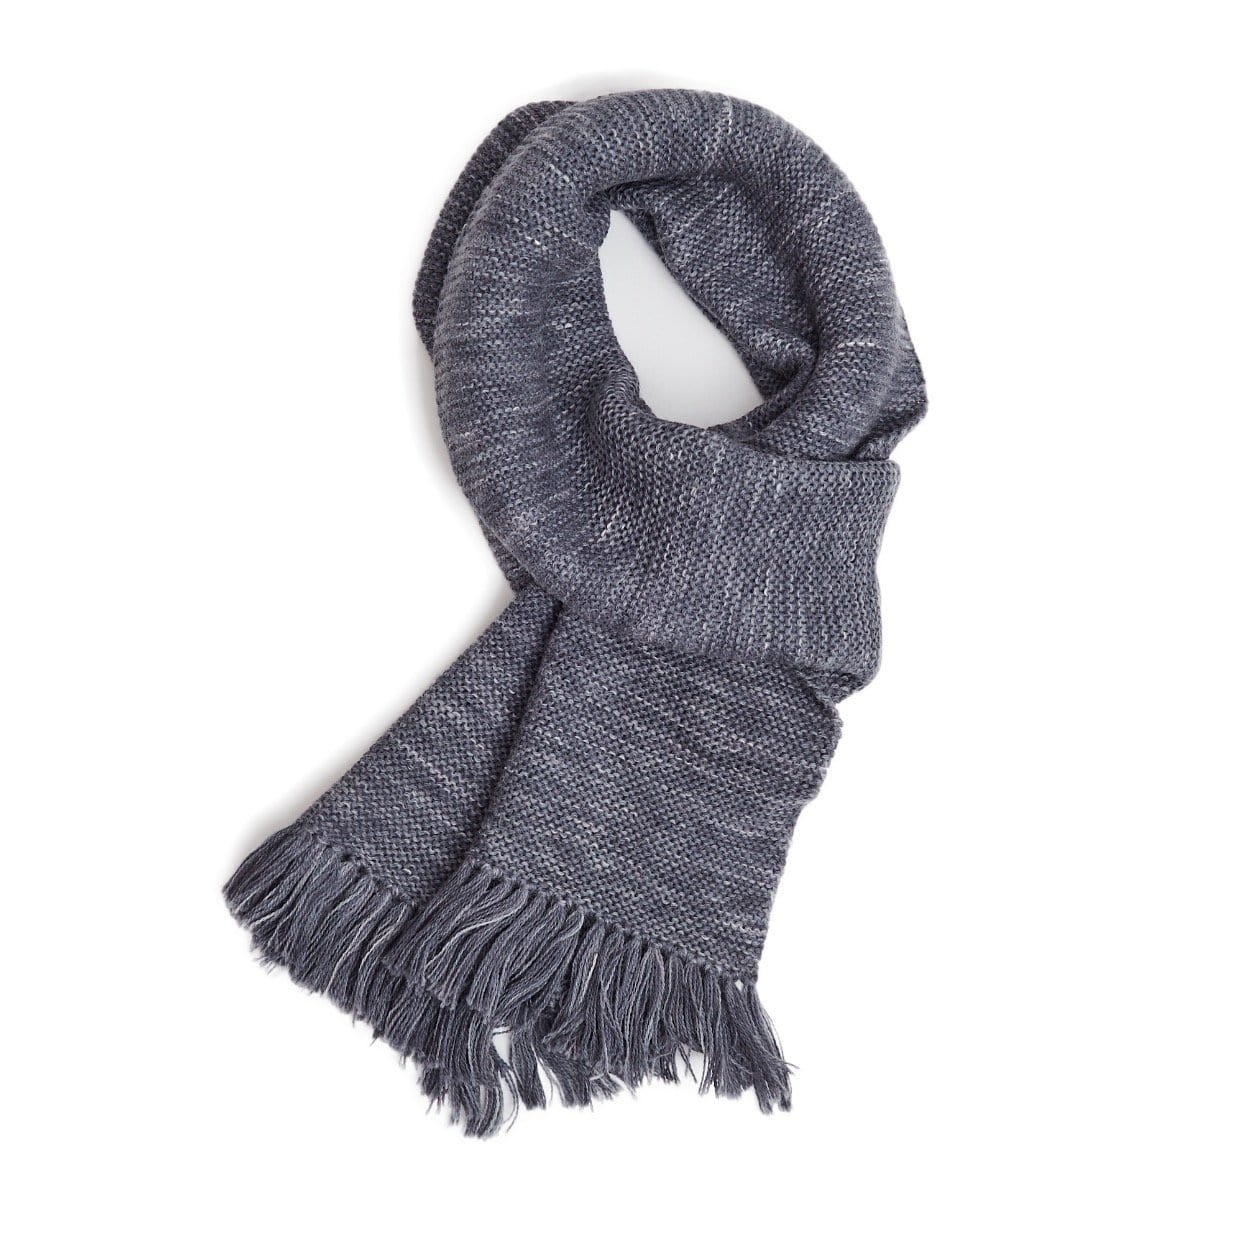 Spacedye Alpaca Scarf - Grey